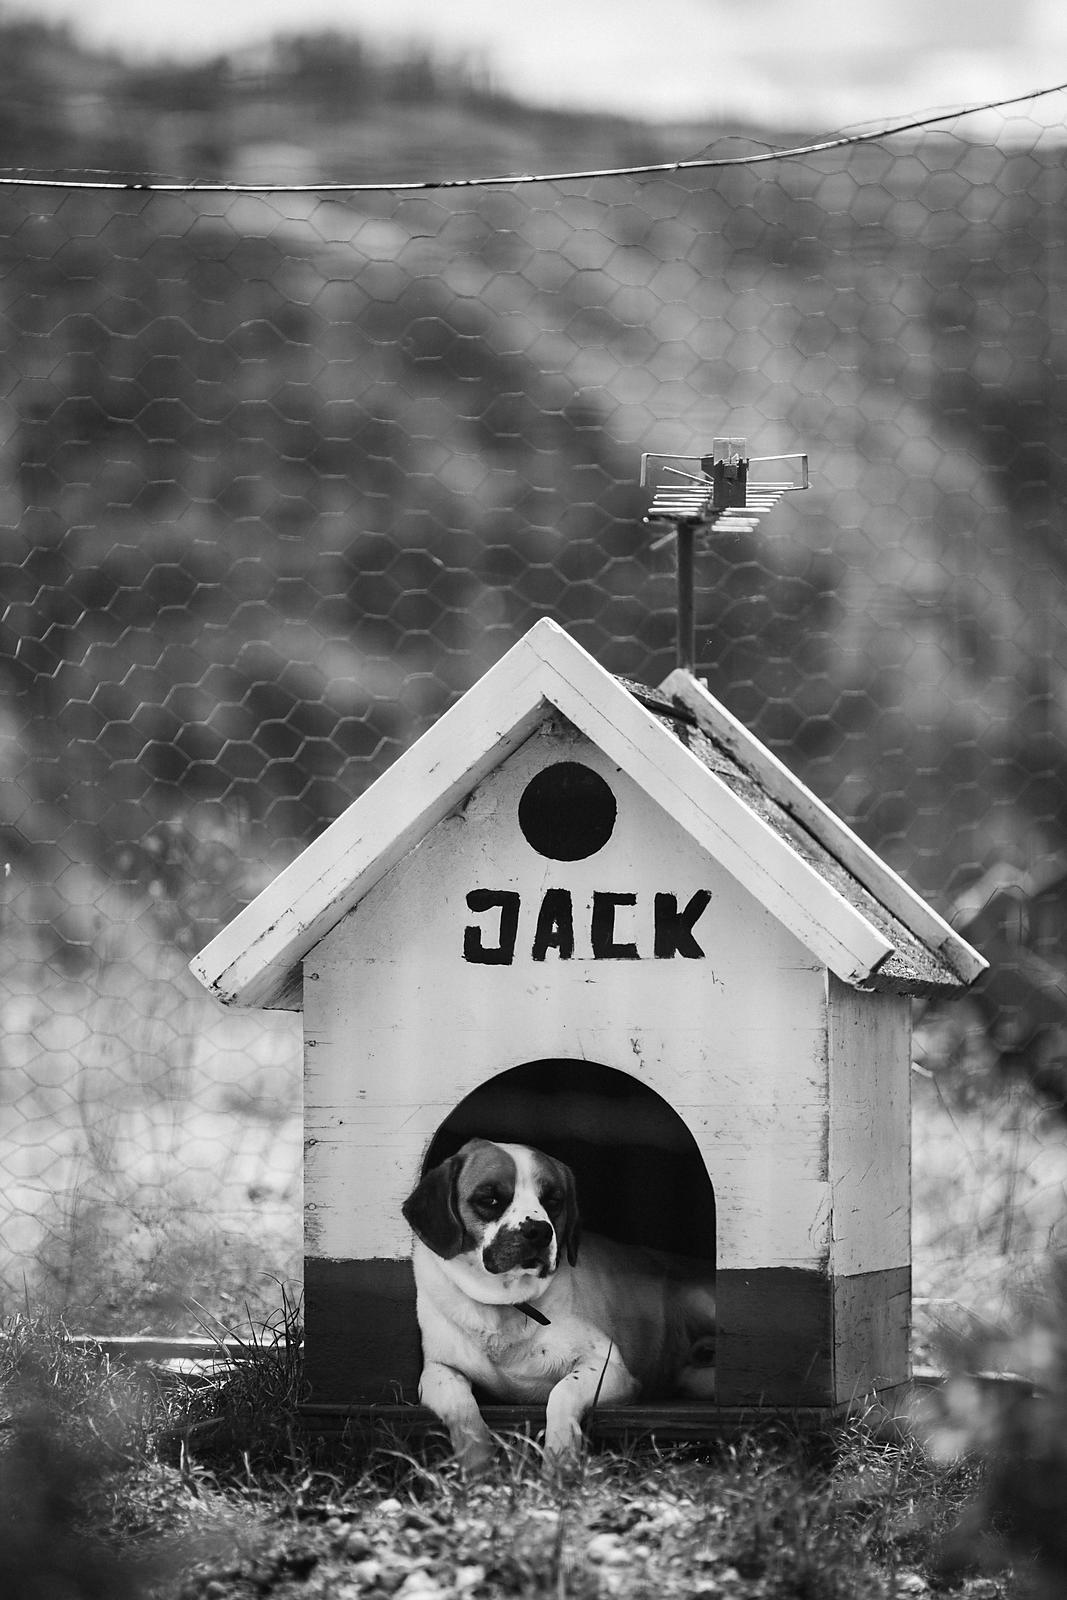 Jack et la méganiche // Jack and the Cuckoo-clock house